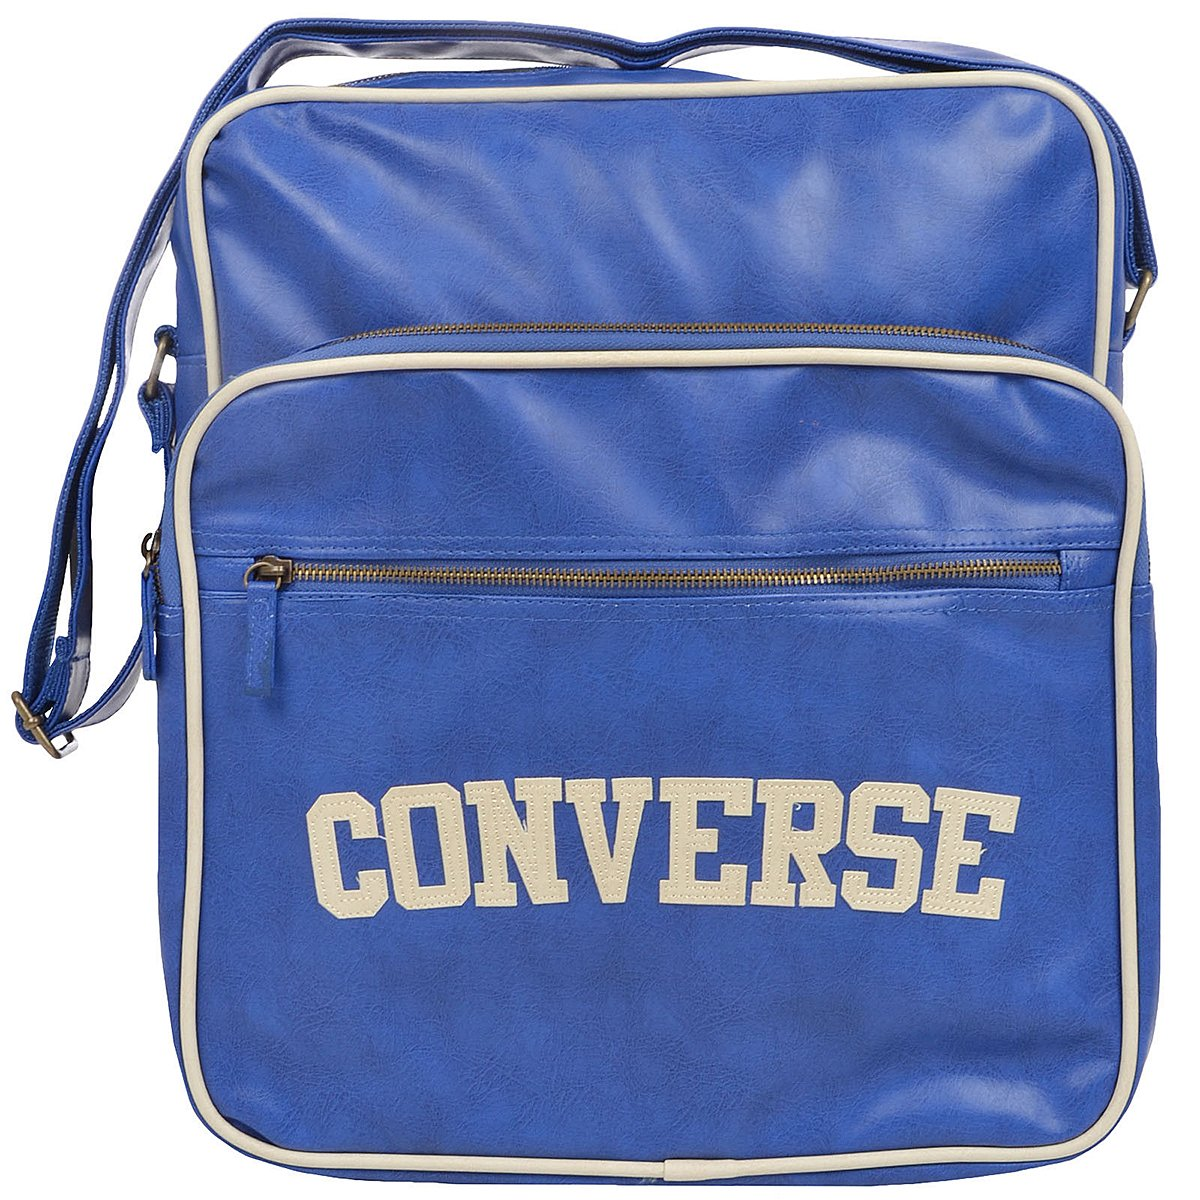 72be47a23334 Converse Unisex Vertical Reporter Heritage Shoulder Carry Messenger Bag -  Blue  Amazon.co.uk  Sports   Outdoors